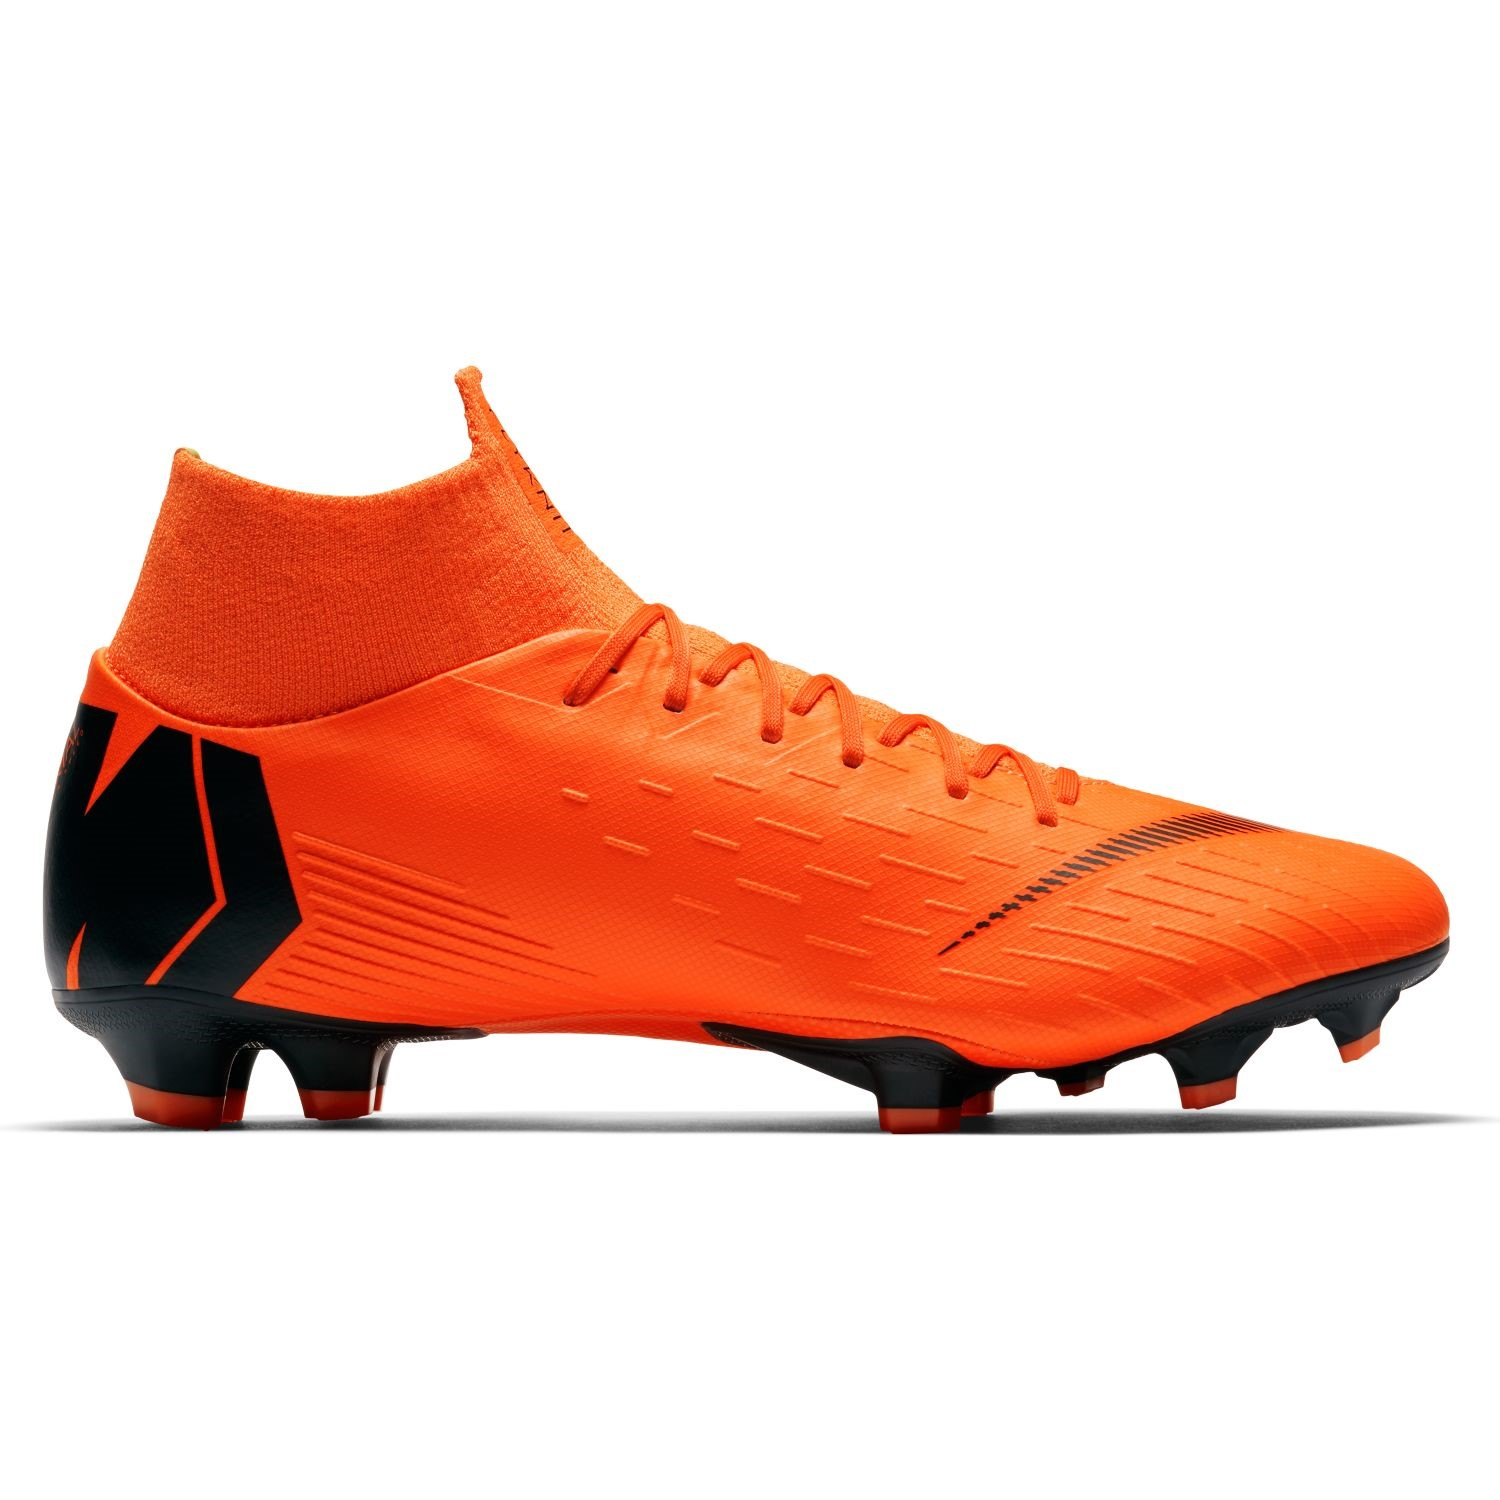 separation shoes 3d0c4 7c72f Nike Mercurial Superfly VI Pro FG - Mens Football Boots